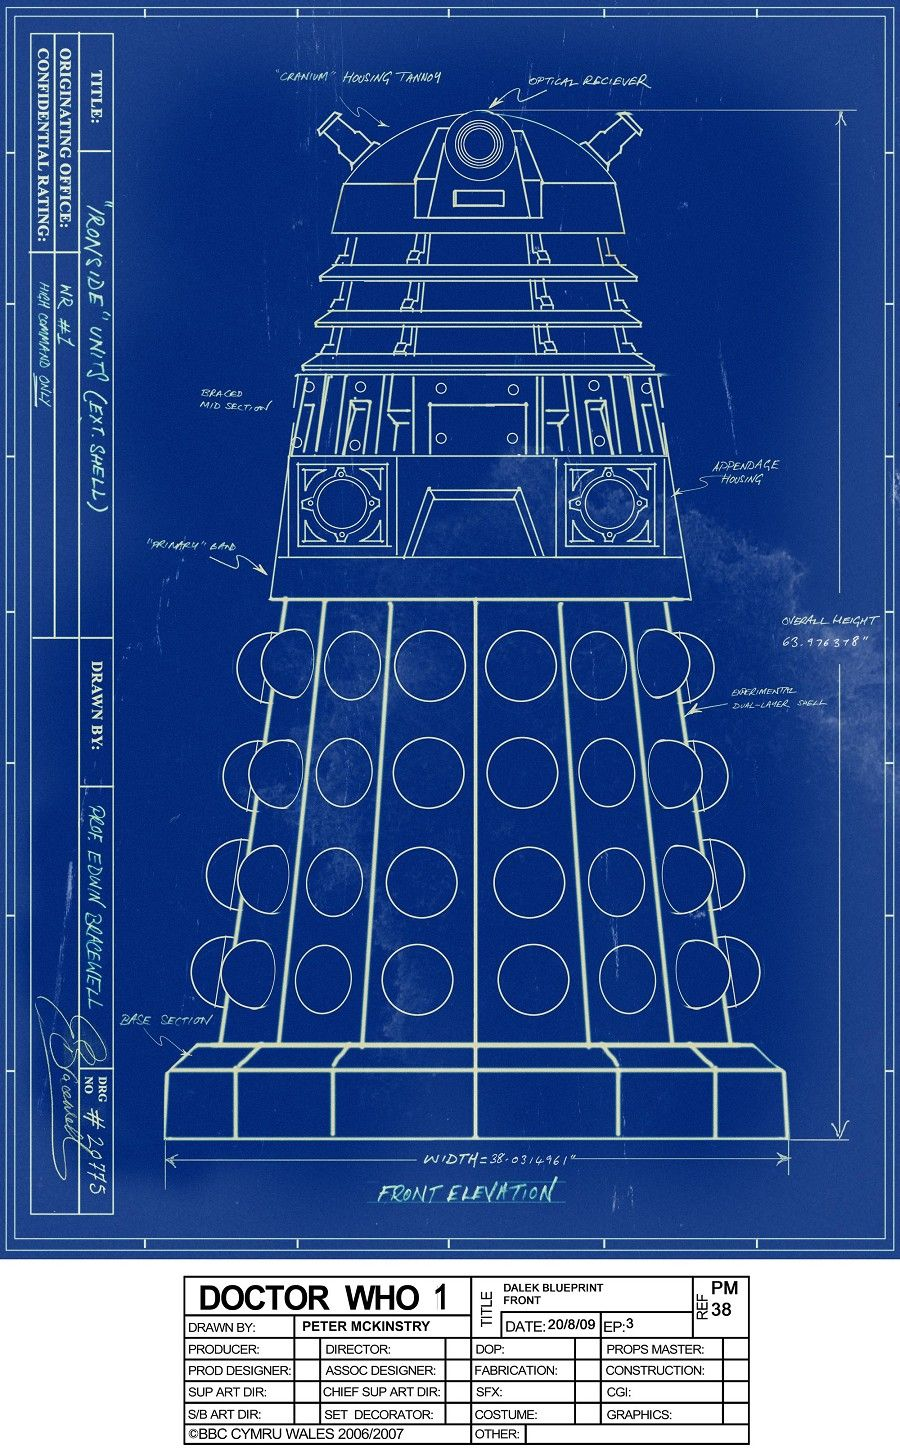 348 Conventional Models Basic 12 Volt Wiring Diagram Schematic Ebay Pin By Lori Holt On Dr Who Pinterest Dalek Doctor And Tardis Pm39 Bp Front 9001453 Pixels Art The